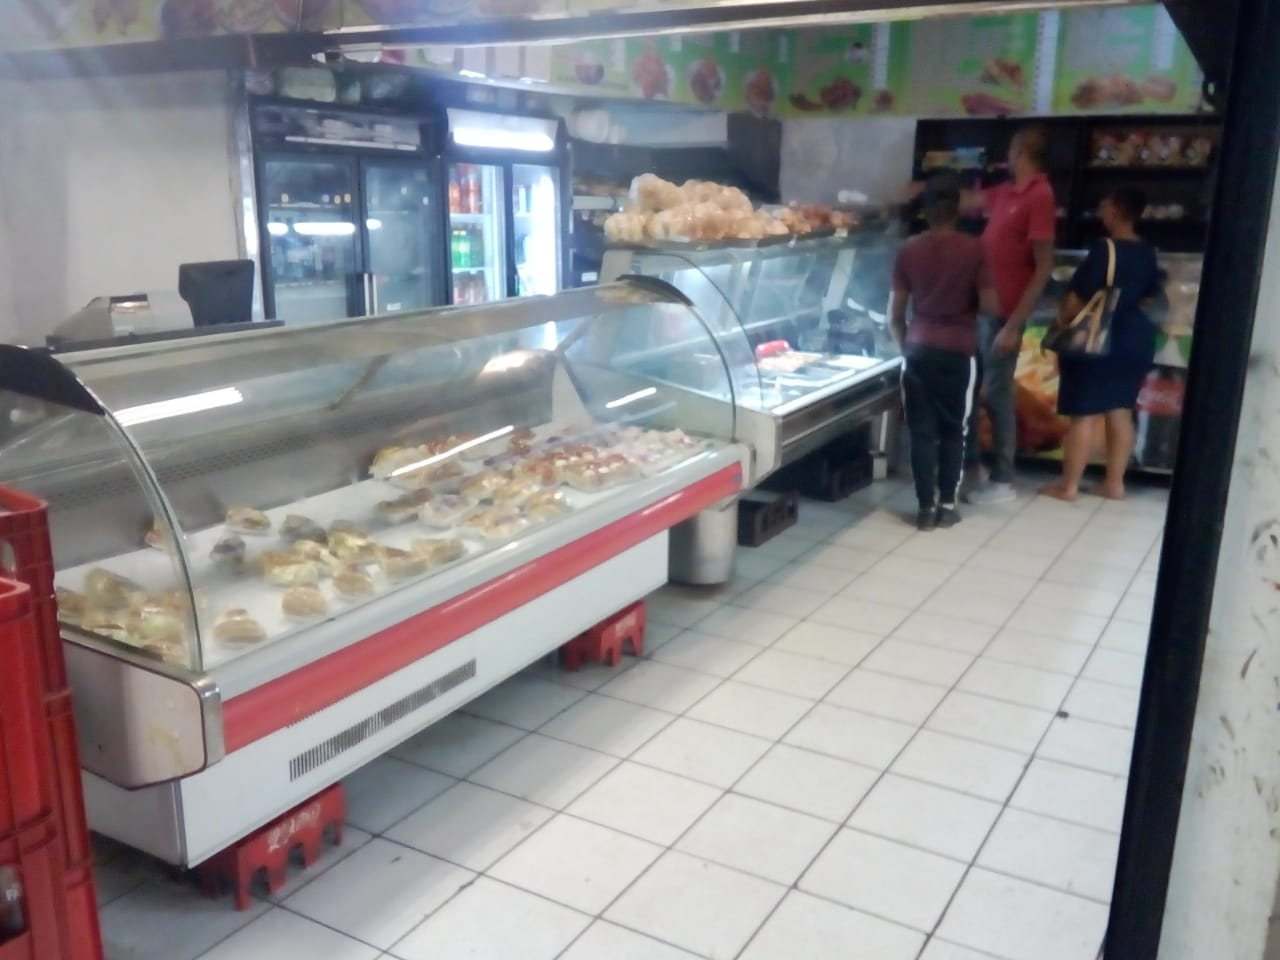 Railway take away business for sale in prime location